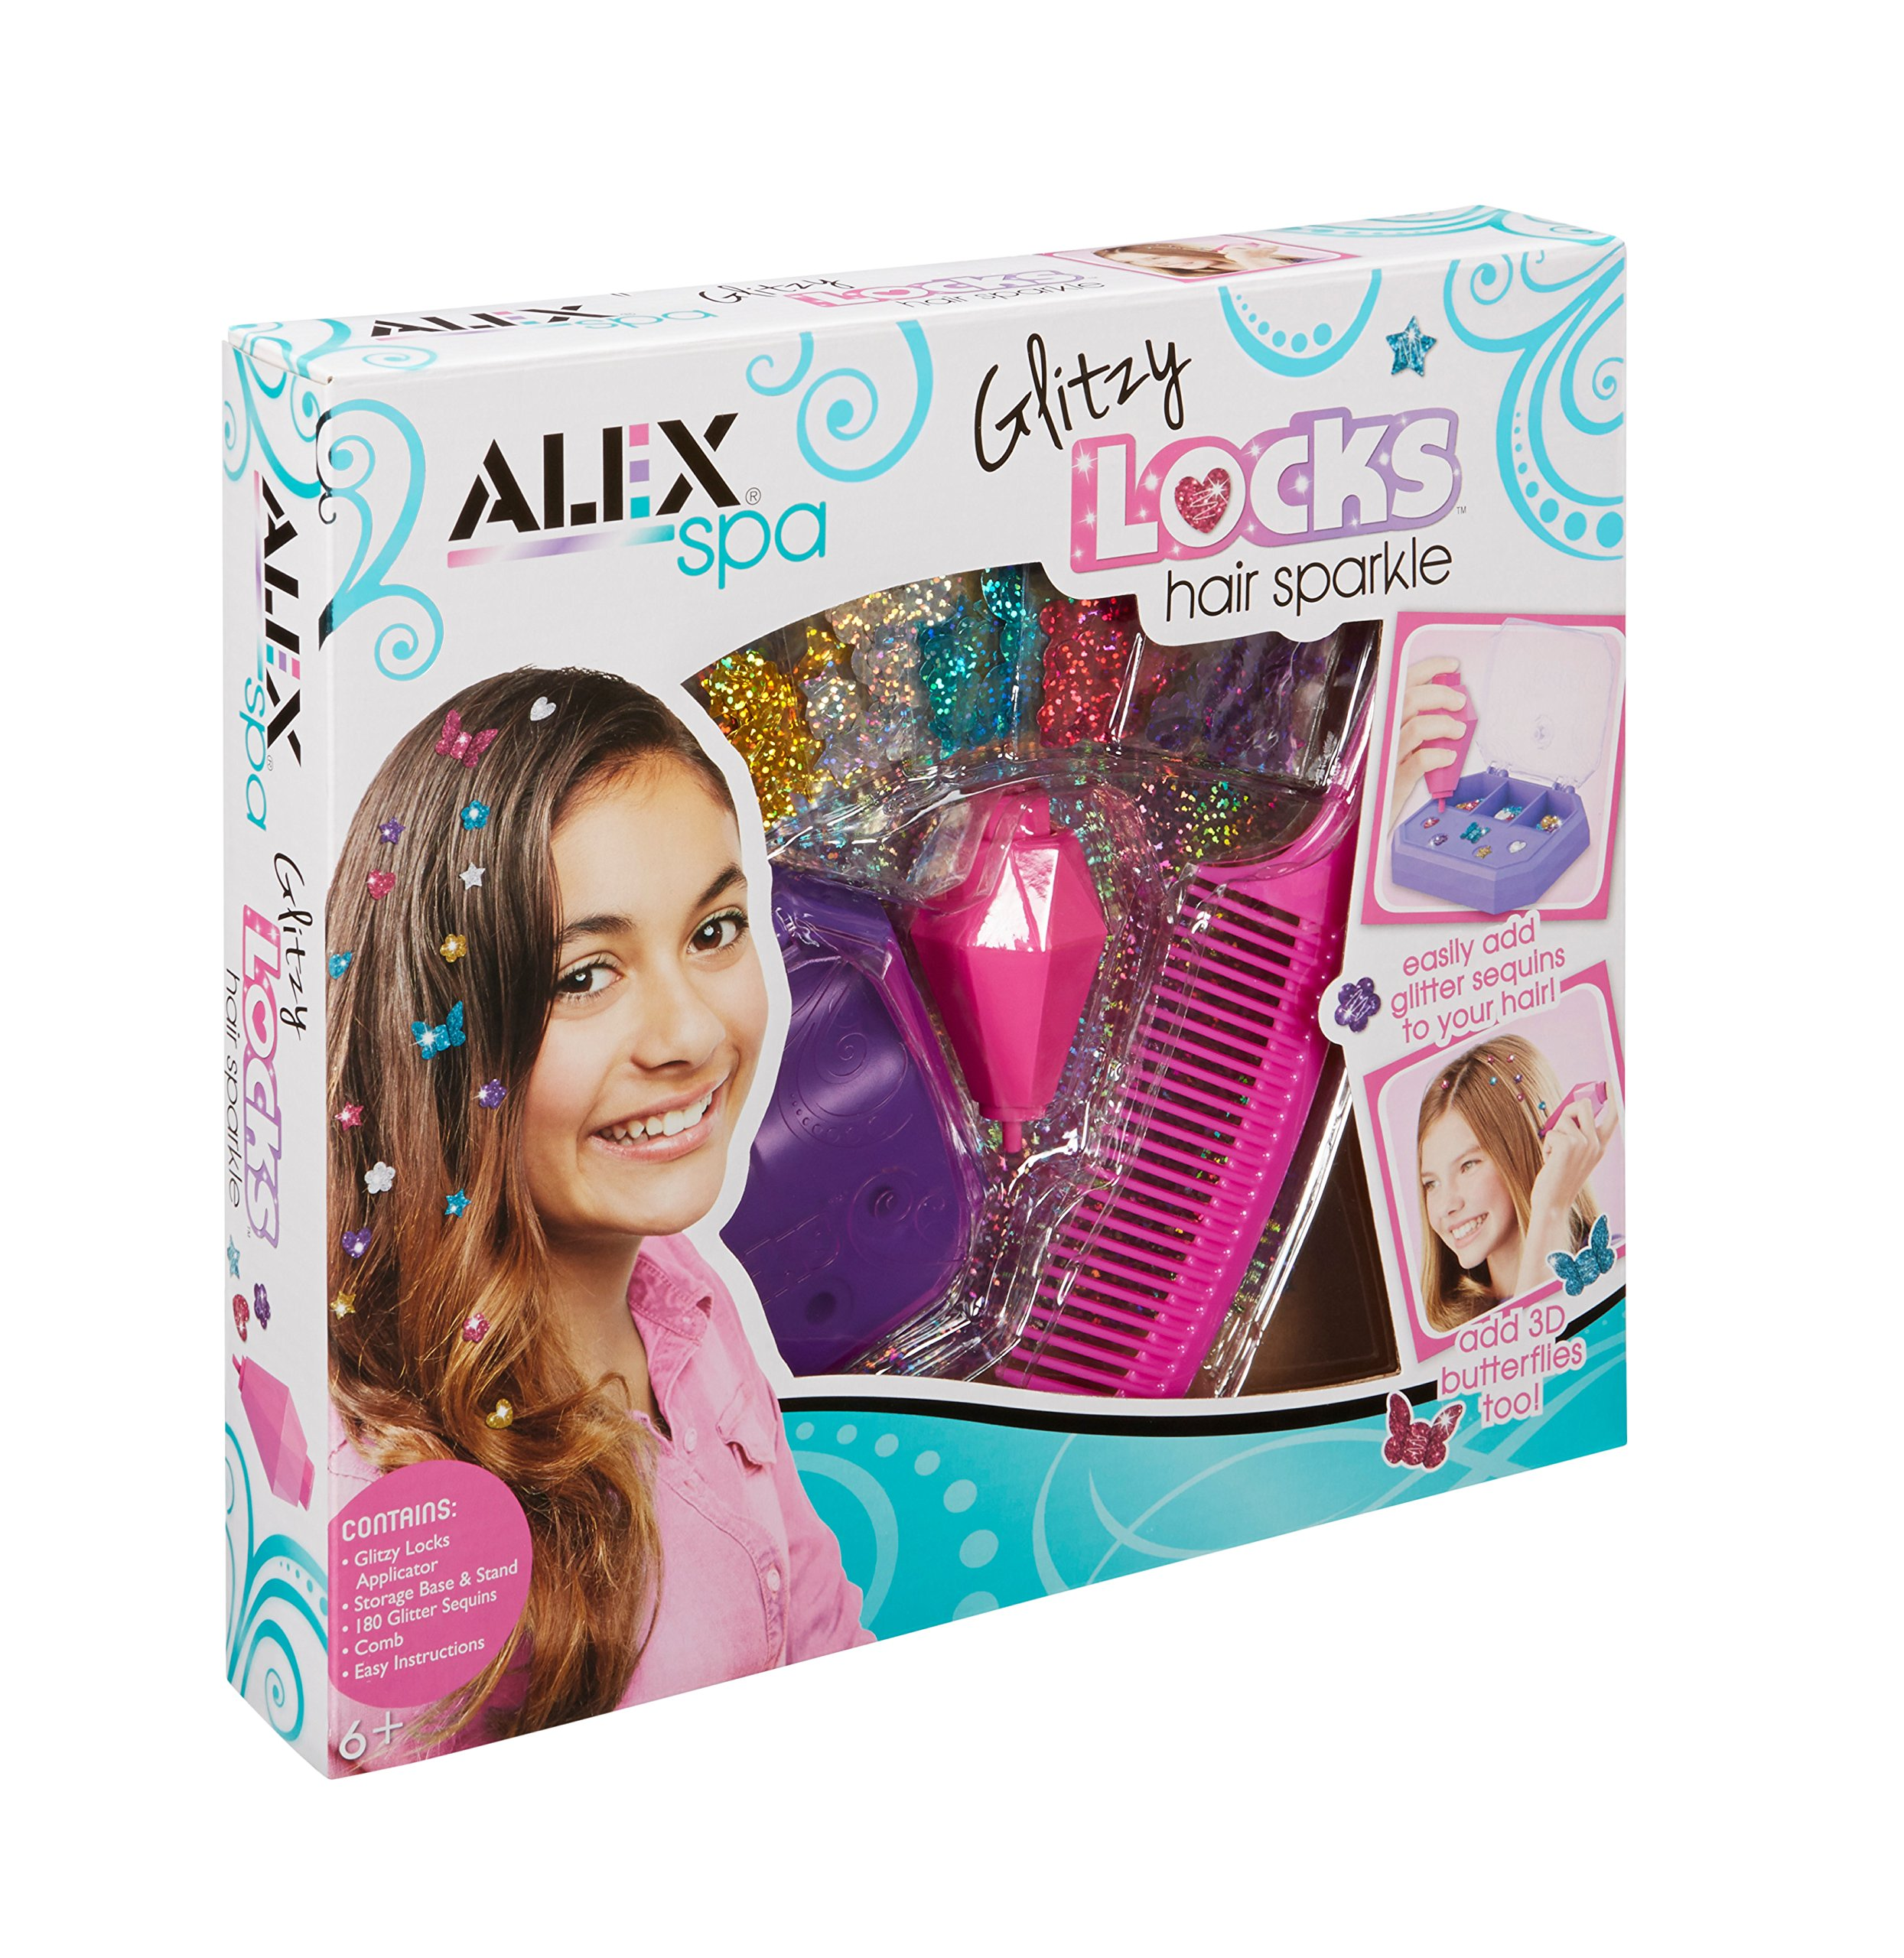 ALEX Spa Glitzy Locks Hair Sparkle product image